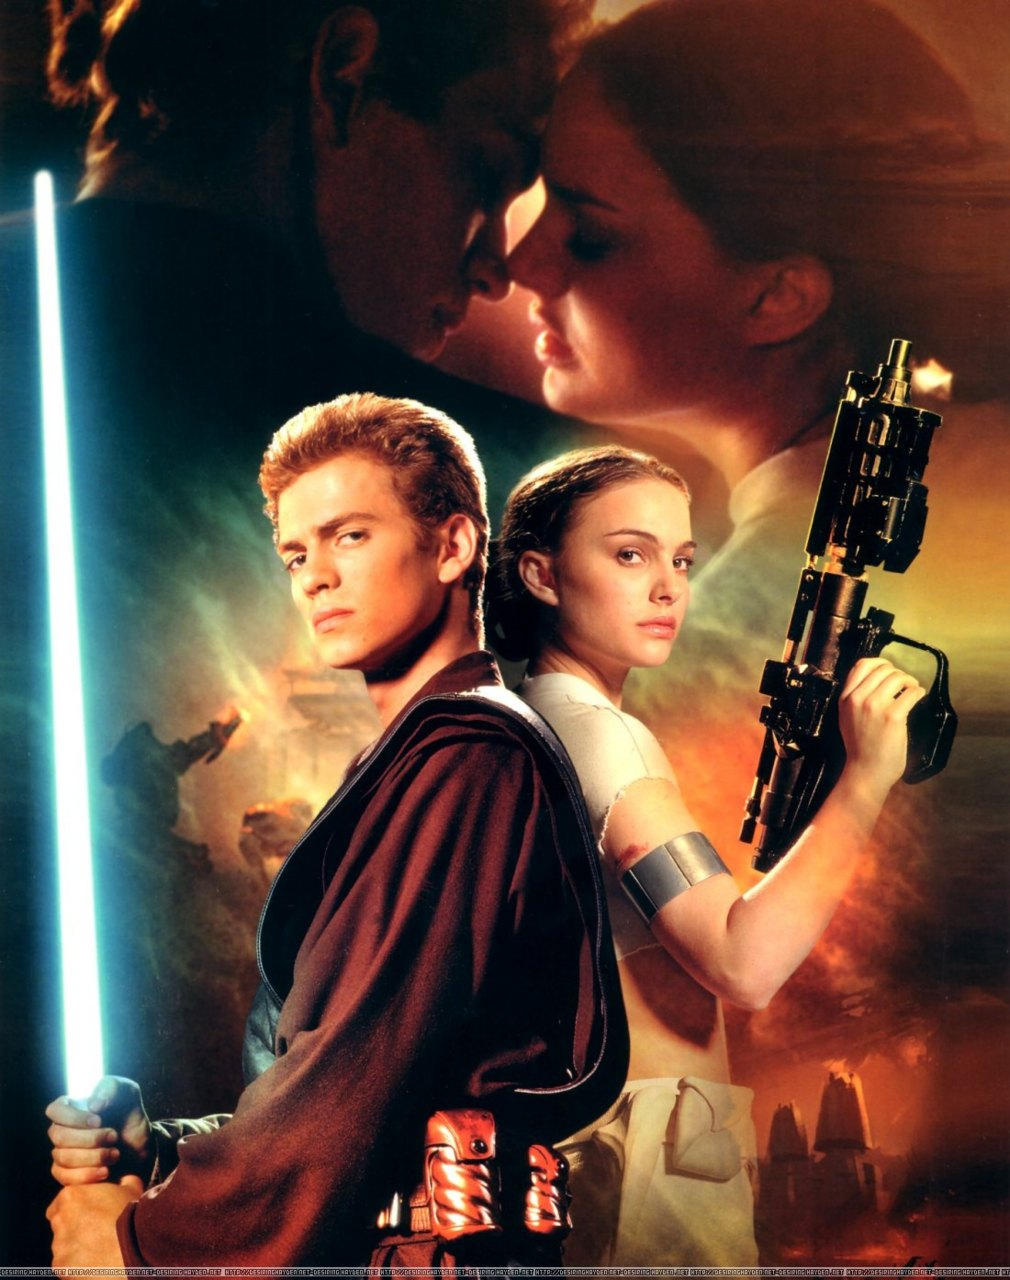 anakin and padme images anakin and padme hd wallpaper and background photos 29417497. Black Bedroom Furniture Sets. Home Design Ideas